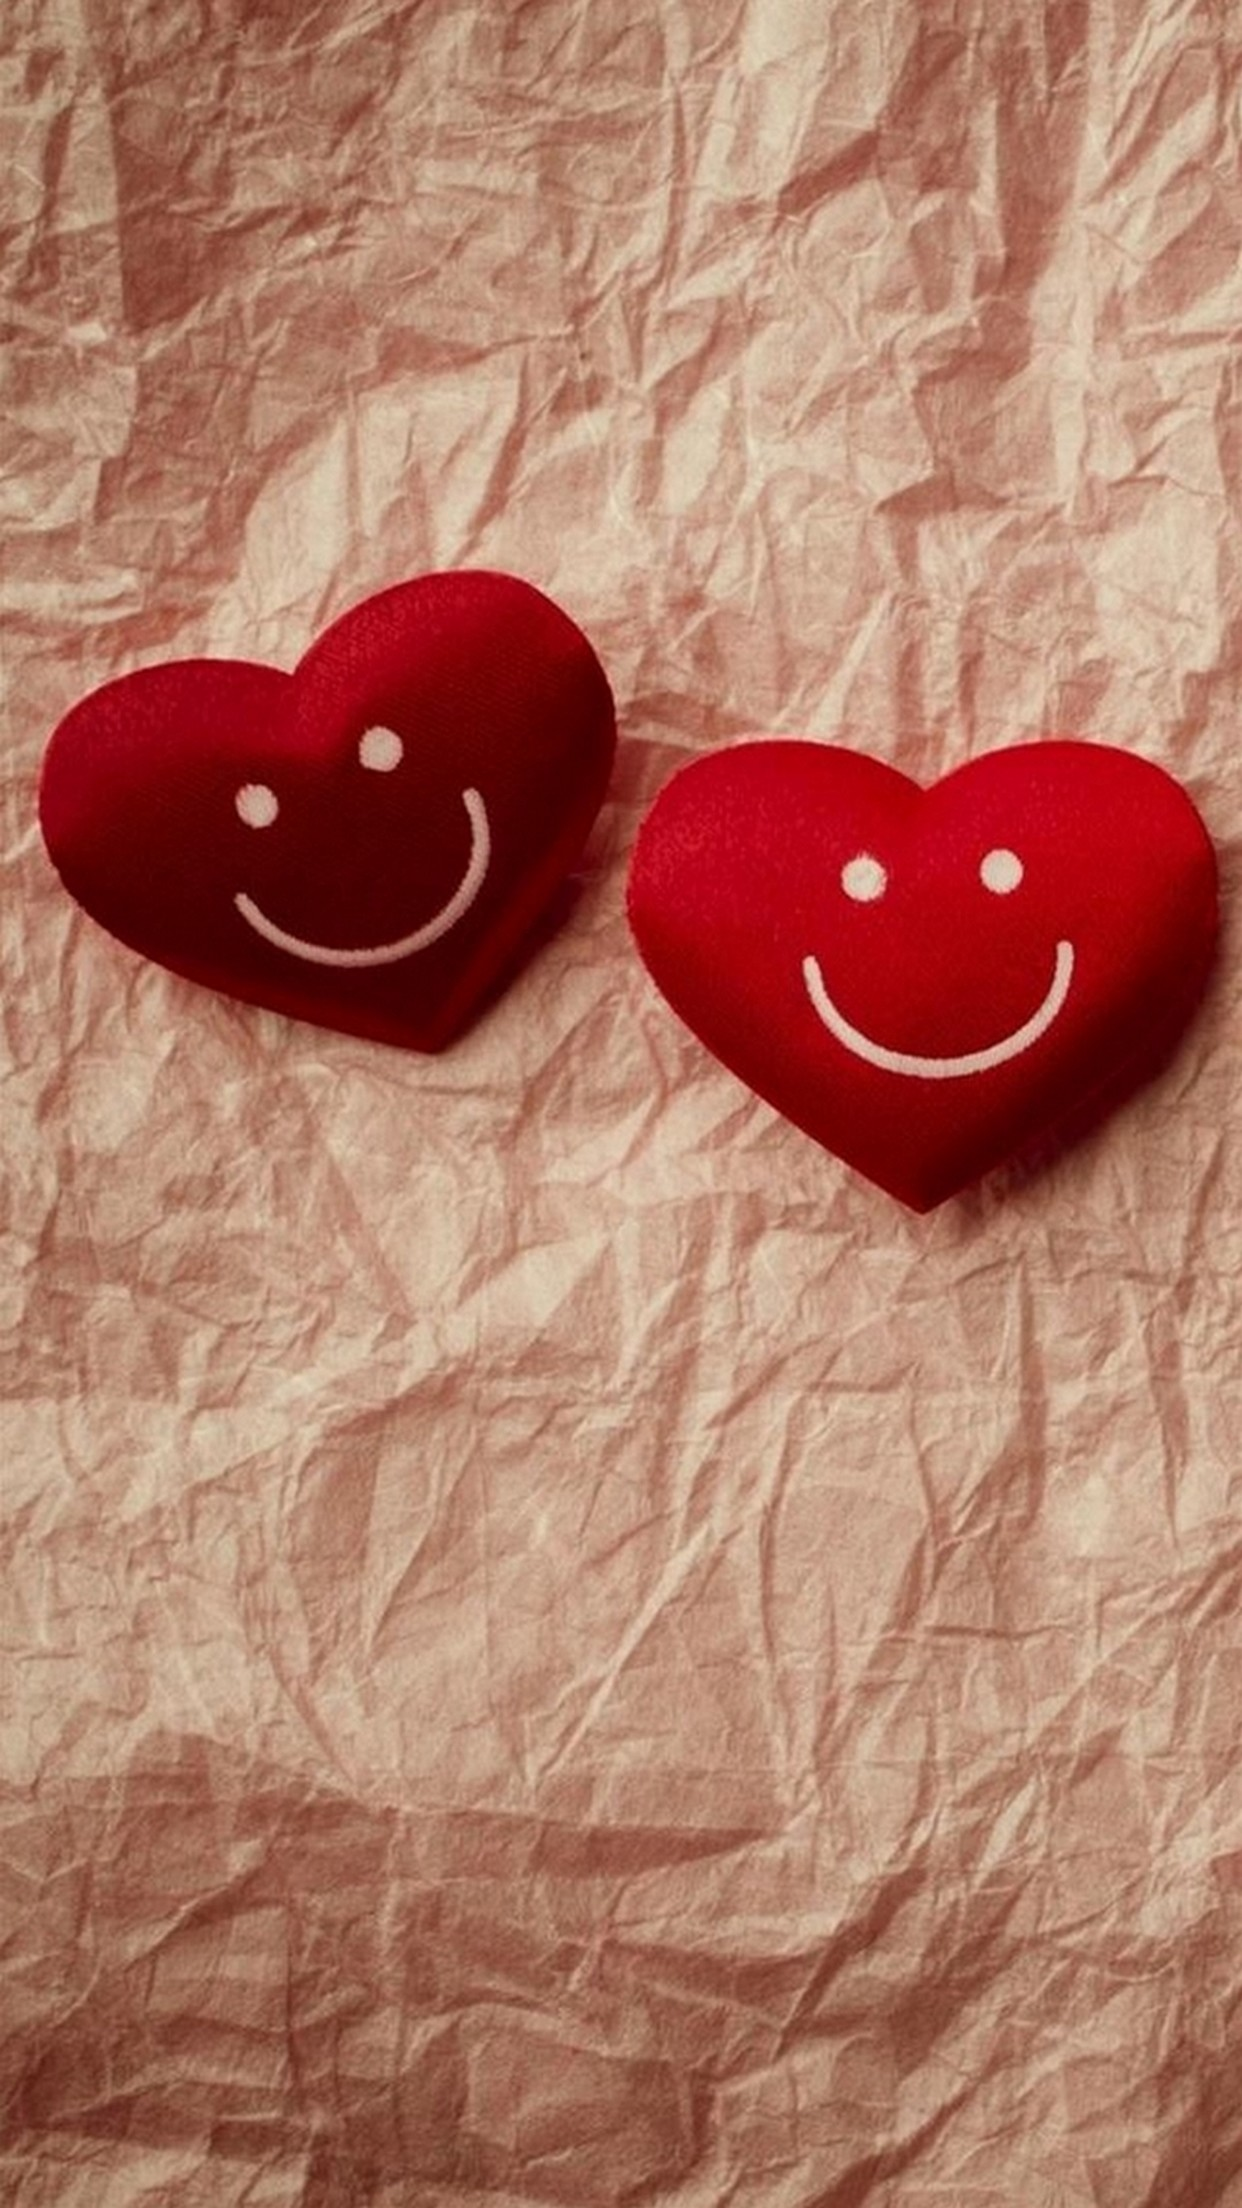 Cute Love Backgrounds (63  images) for Cute Love Wallpapers For Mobile Phones  284dqh